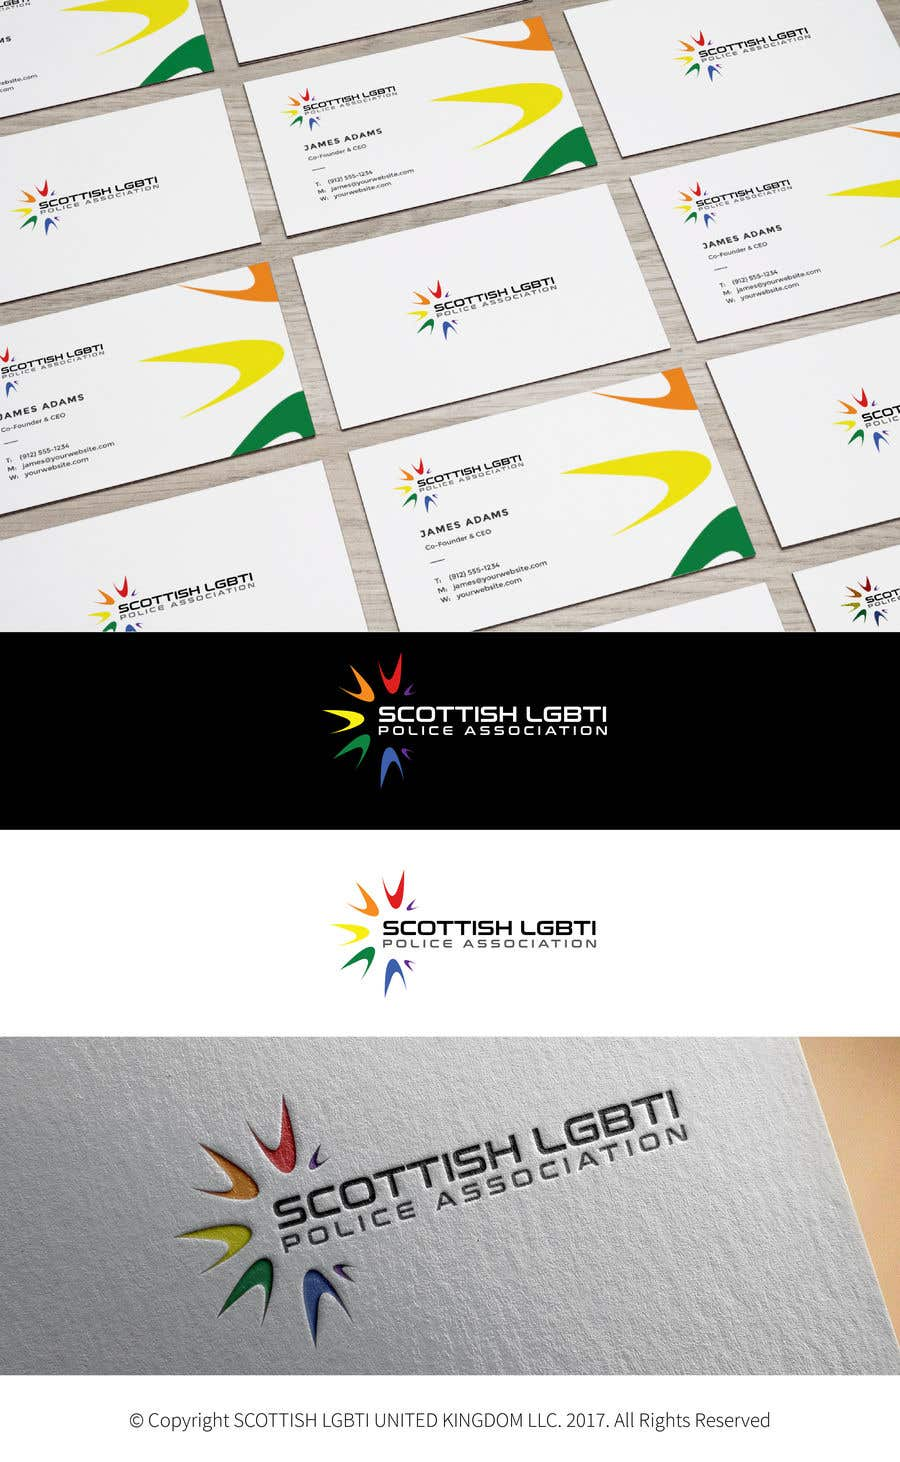 Konkurrenceindlæg #37 for Design a Logo - Scottish LGBTI Police Association